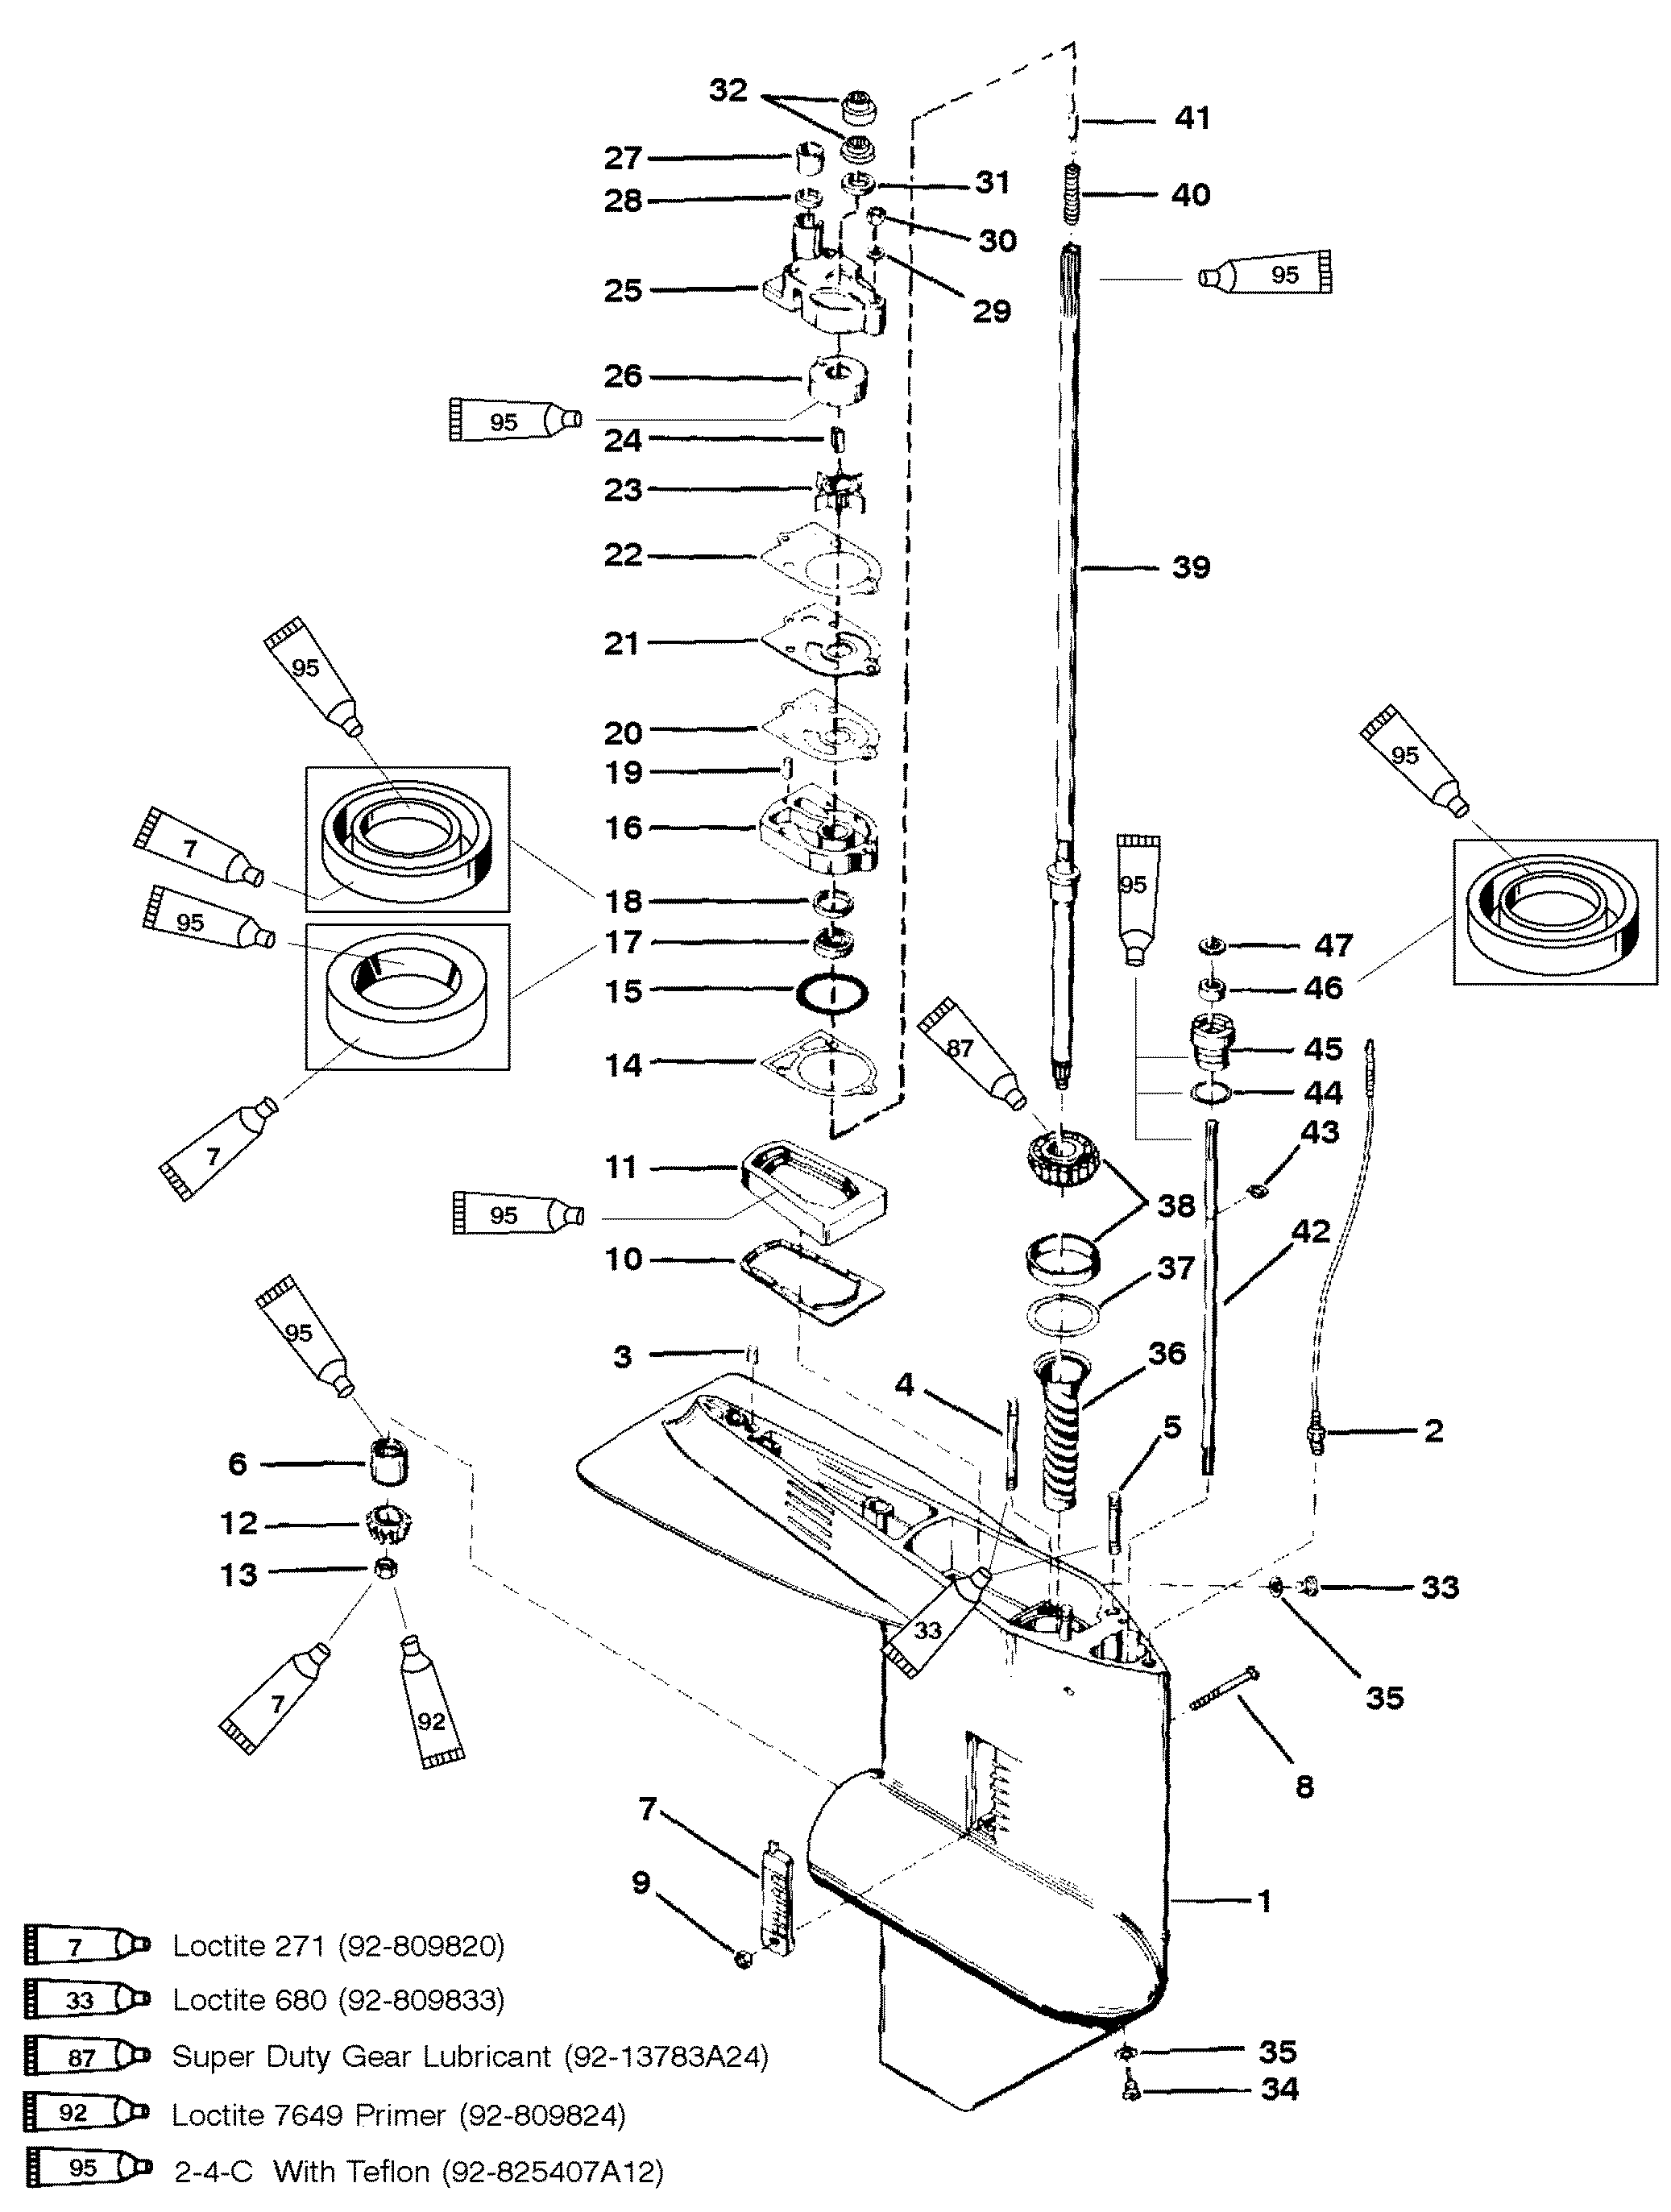 D R Wiring Diagram Atc Rx furthermore Fetch Id   D likewise Maxresdefault besides Maxresdefault furthermore Hp Gearcase Driveshaft. on johnson 40 hp wiring diagram